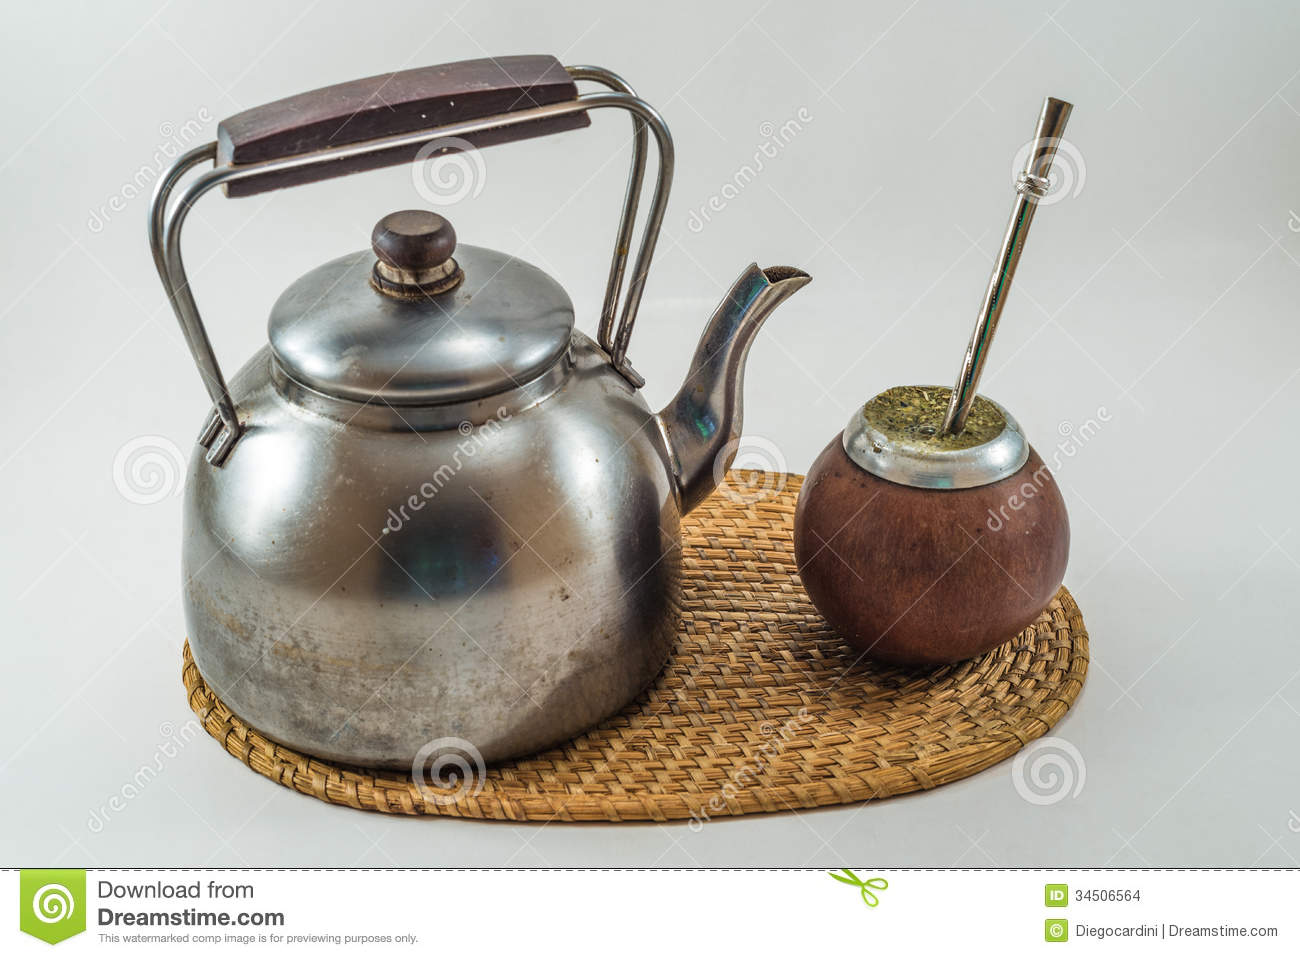 latin america map with Stock Images Traditional Argentinean Bevarage Mate Kettle Yerba Mate B Buenos Aires South America Argentina Latin Image34506564 on Punta Del Este also Customer Journey Mapping Is At The Heart Of Digital Transformation as well Cline further Ochnac additionally Ro.